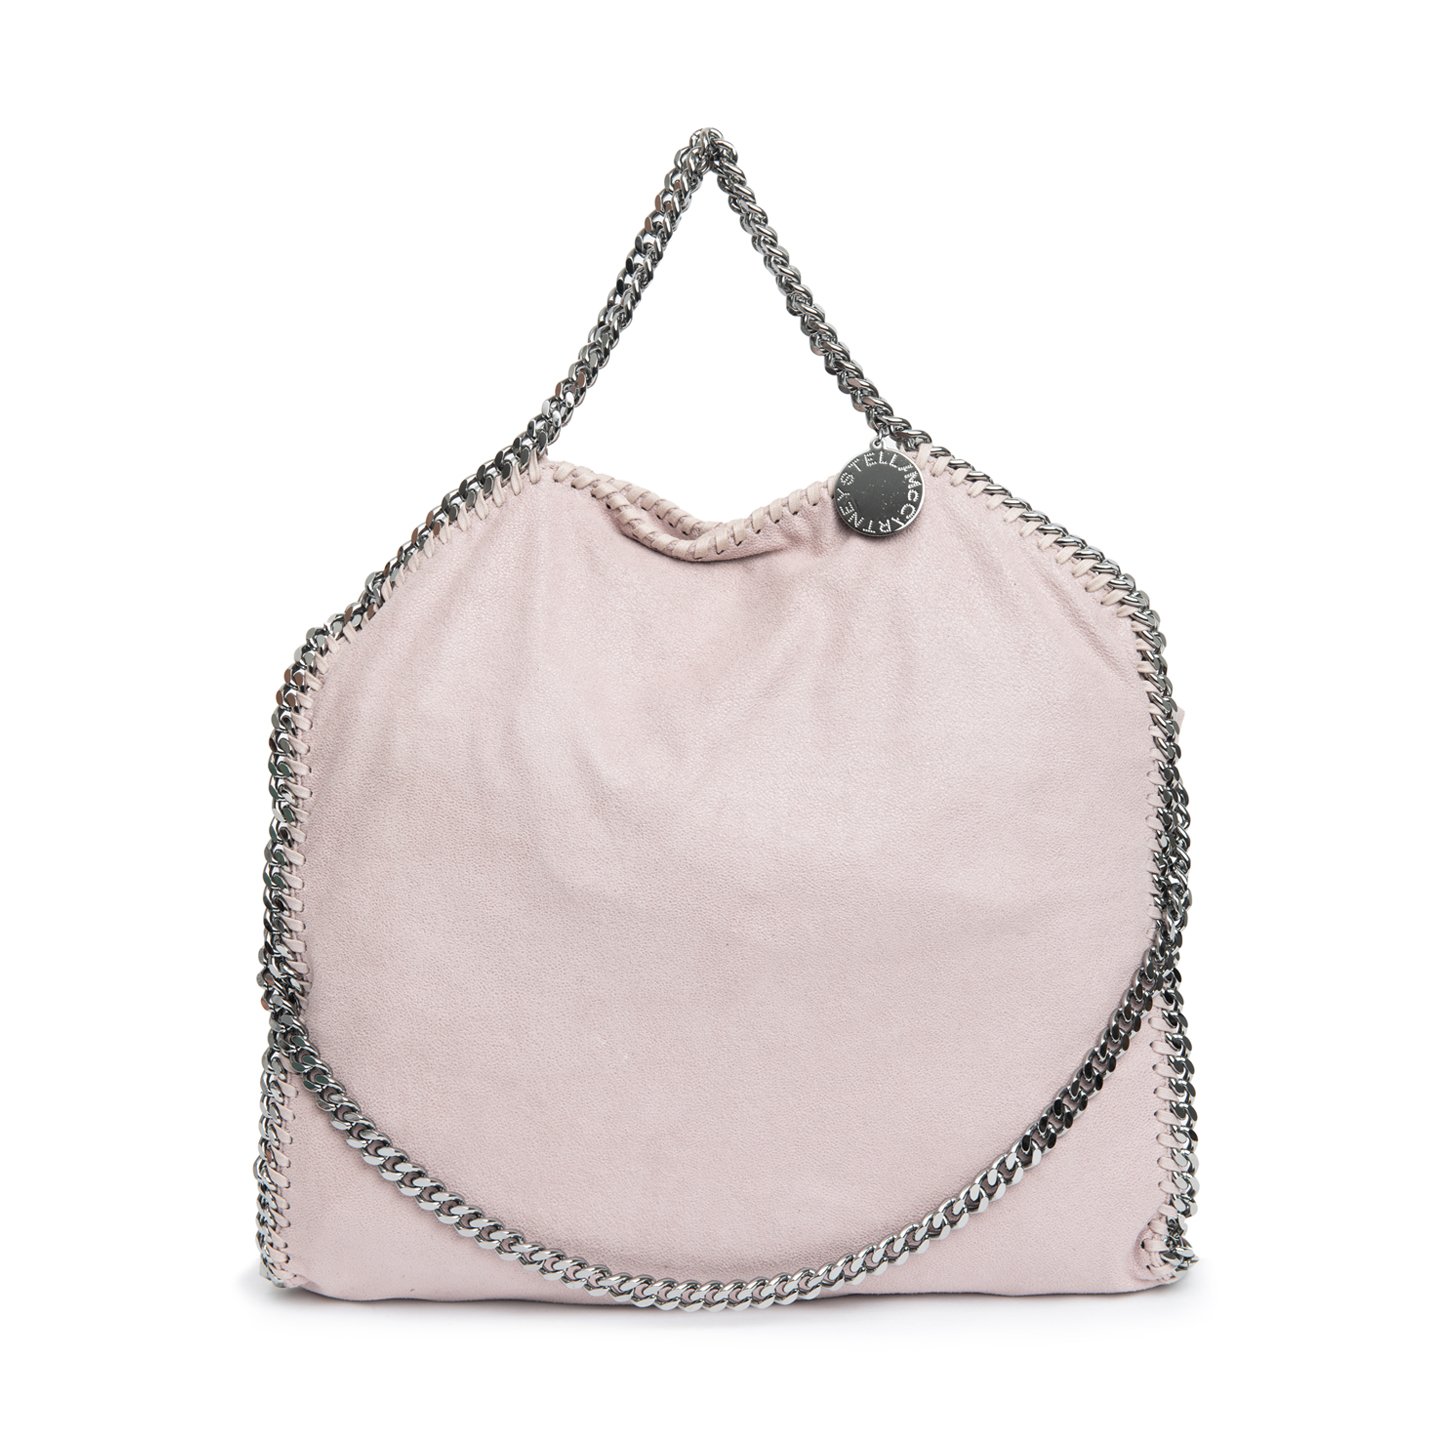 2b8e39d00510 Stella McCartney Pink Faux Leather Falabella Fold-over Tote ...